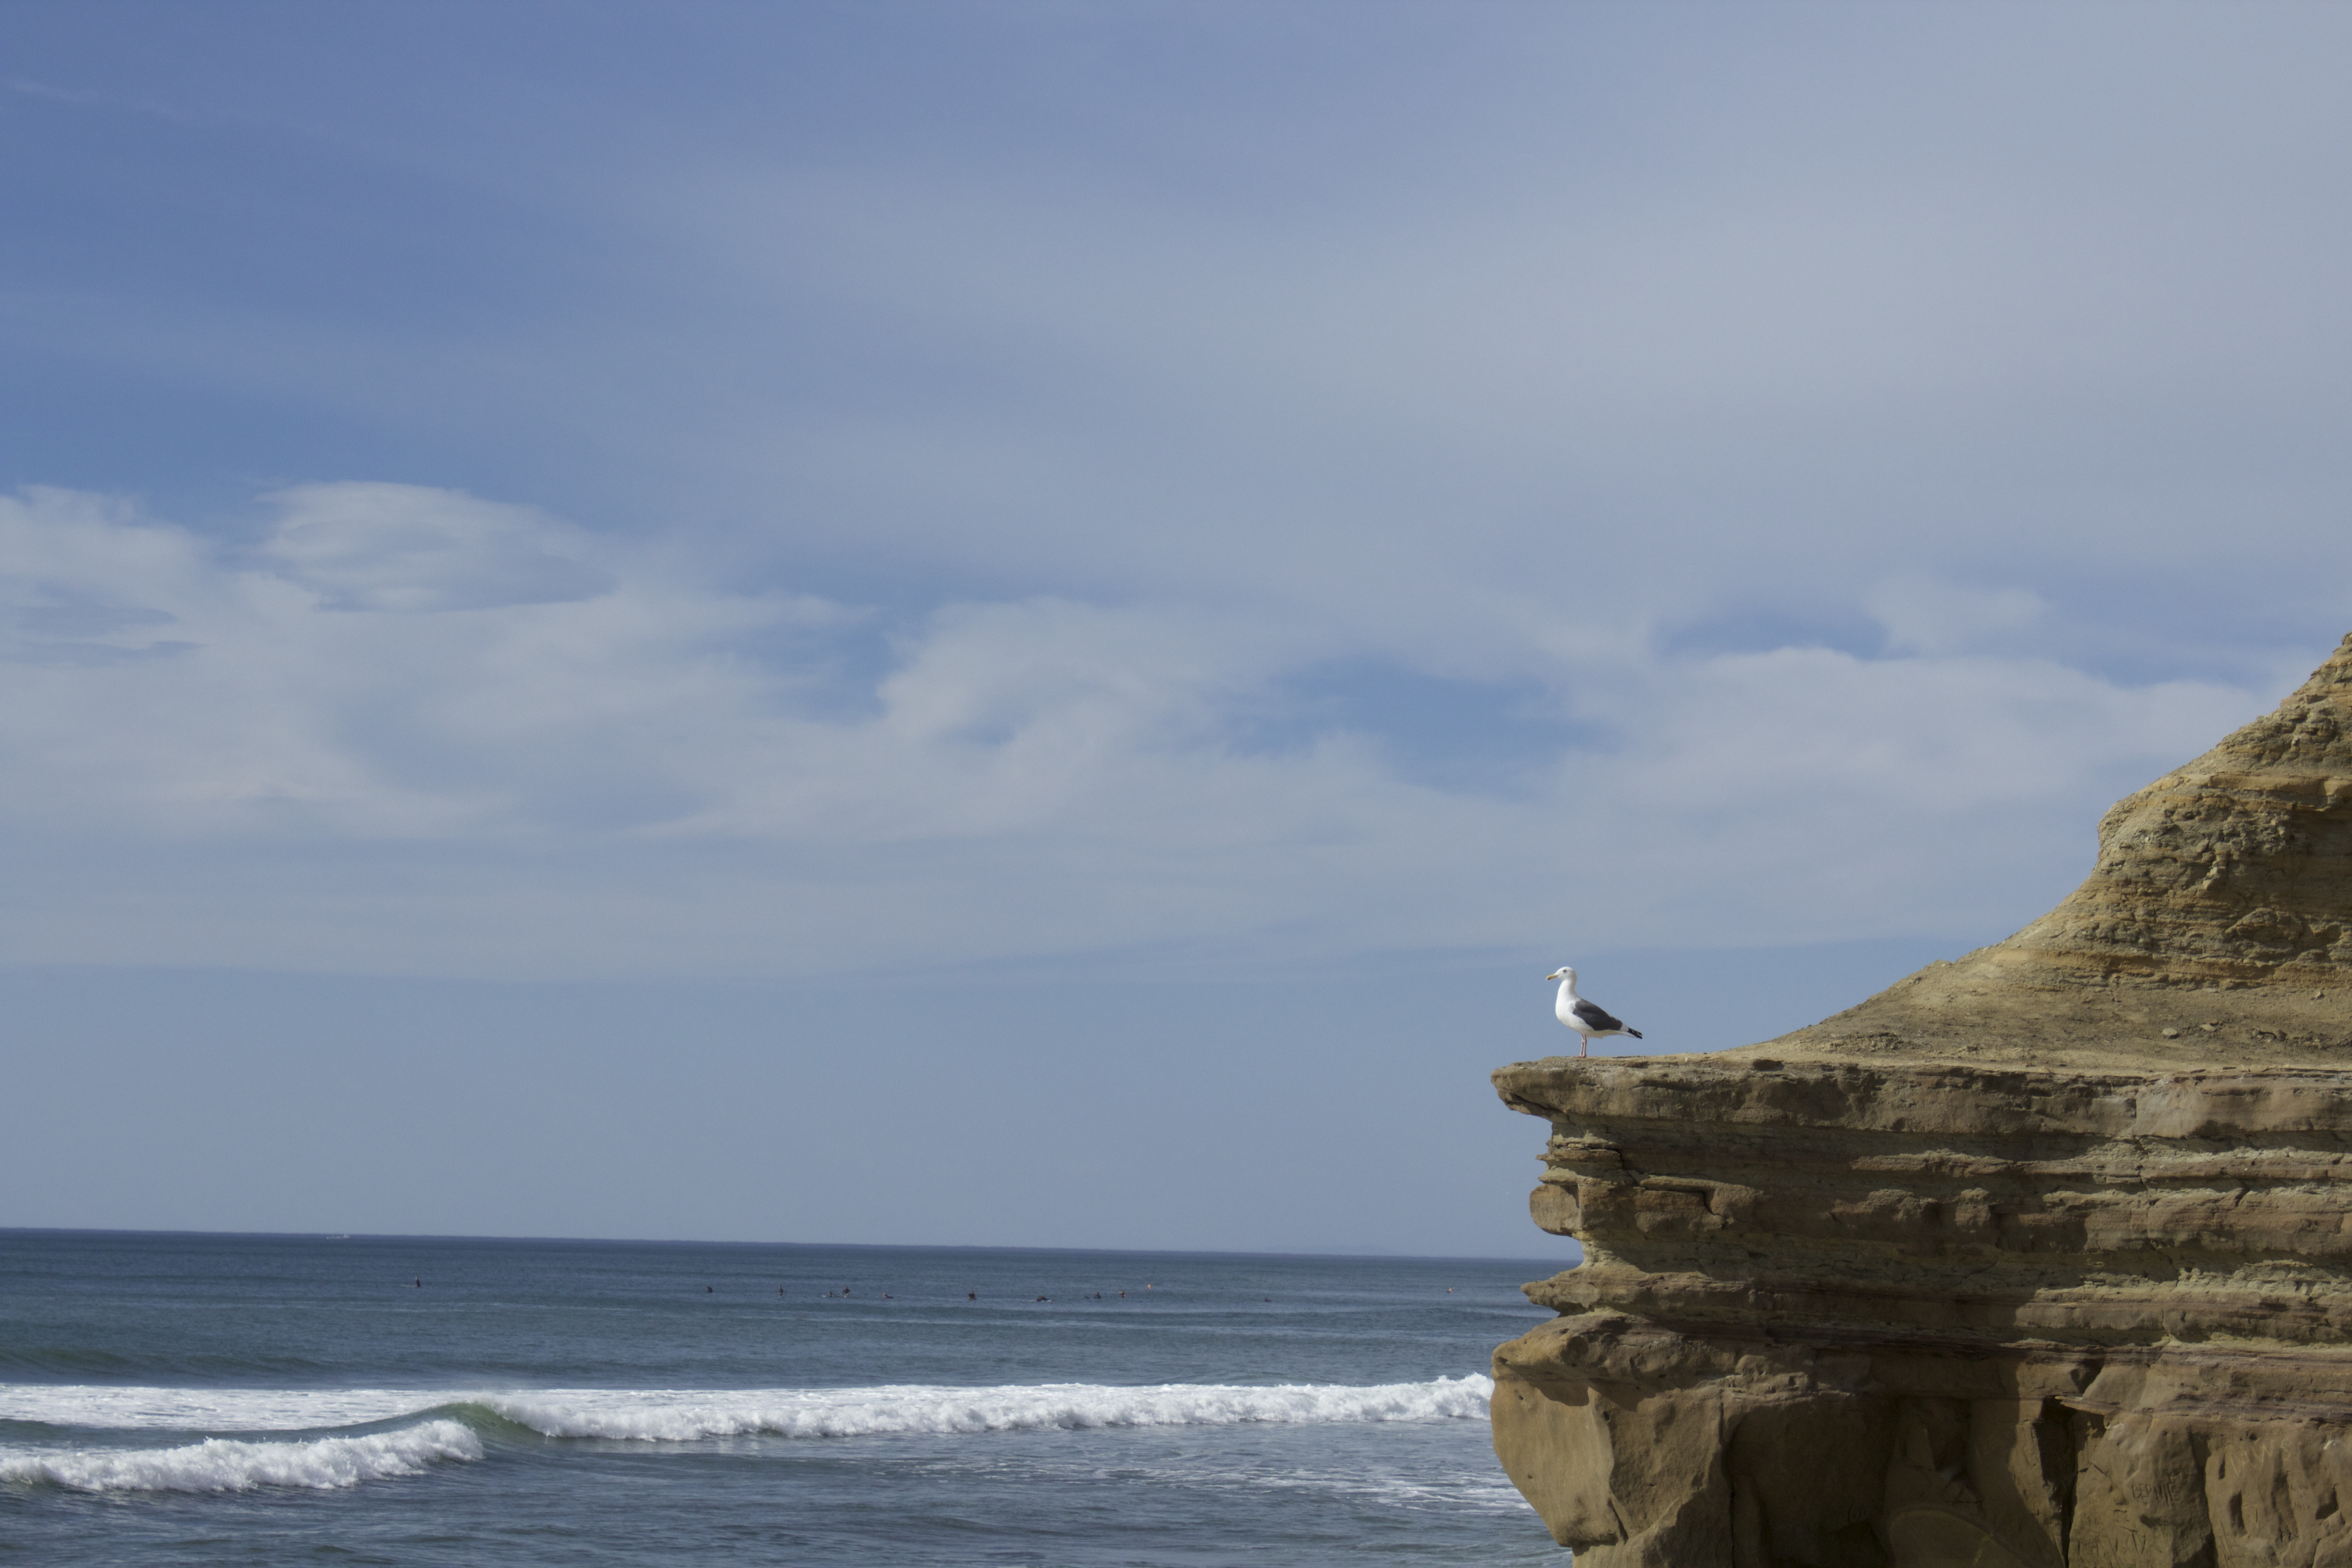 Seagull at Surf